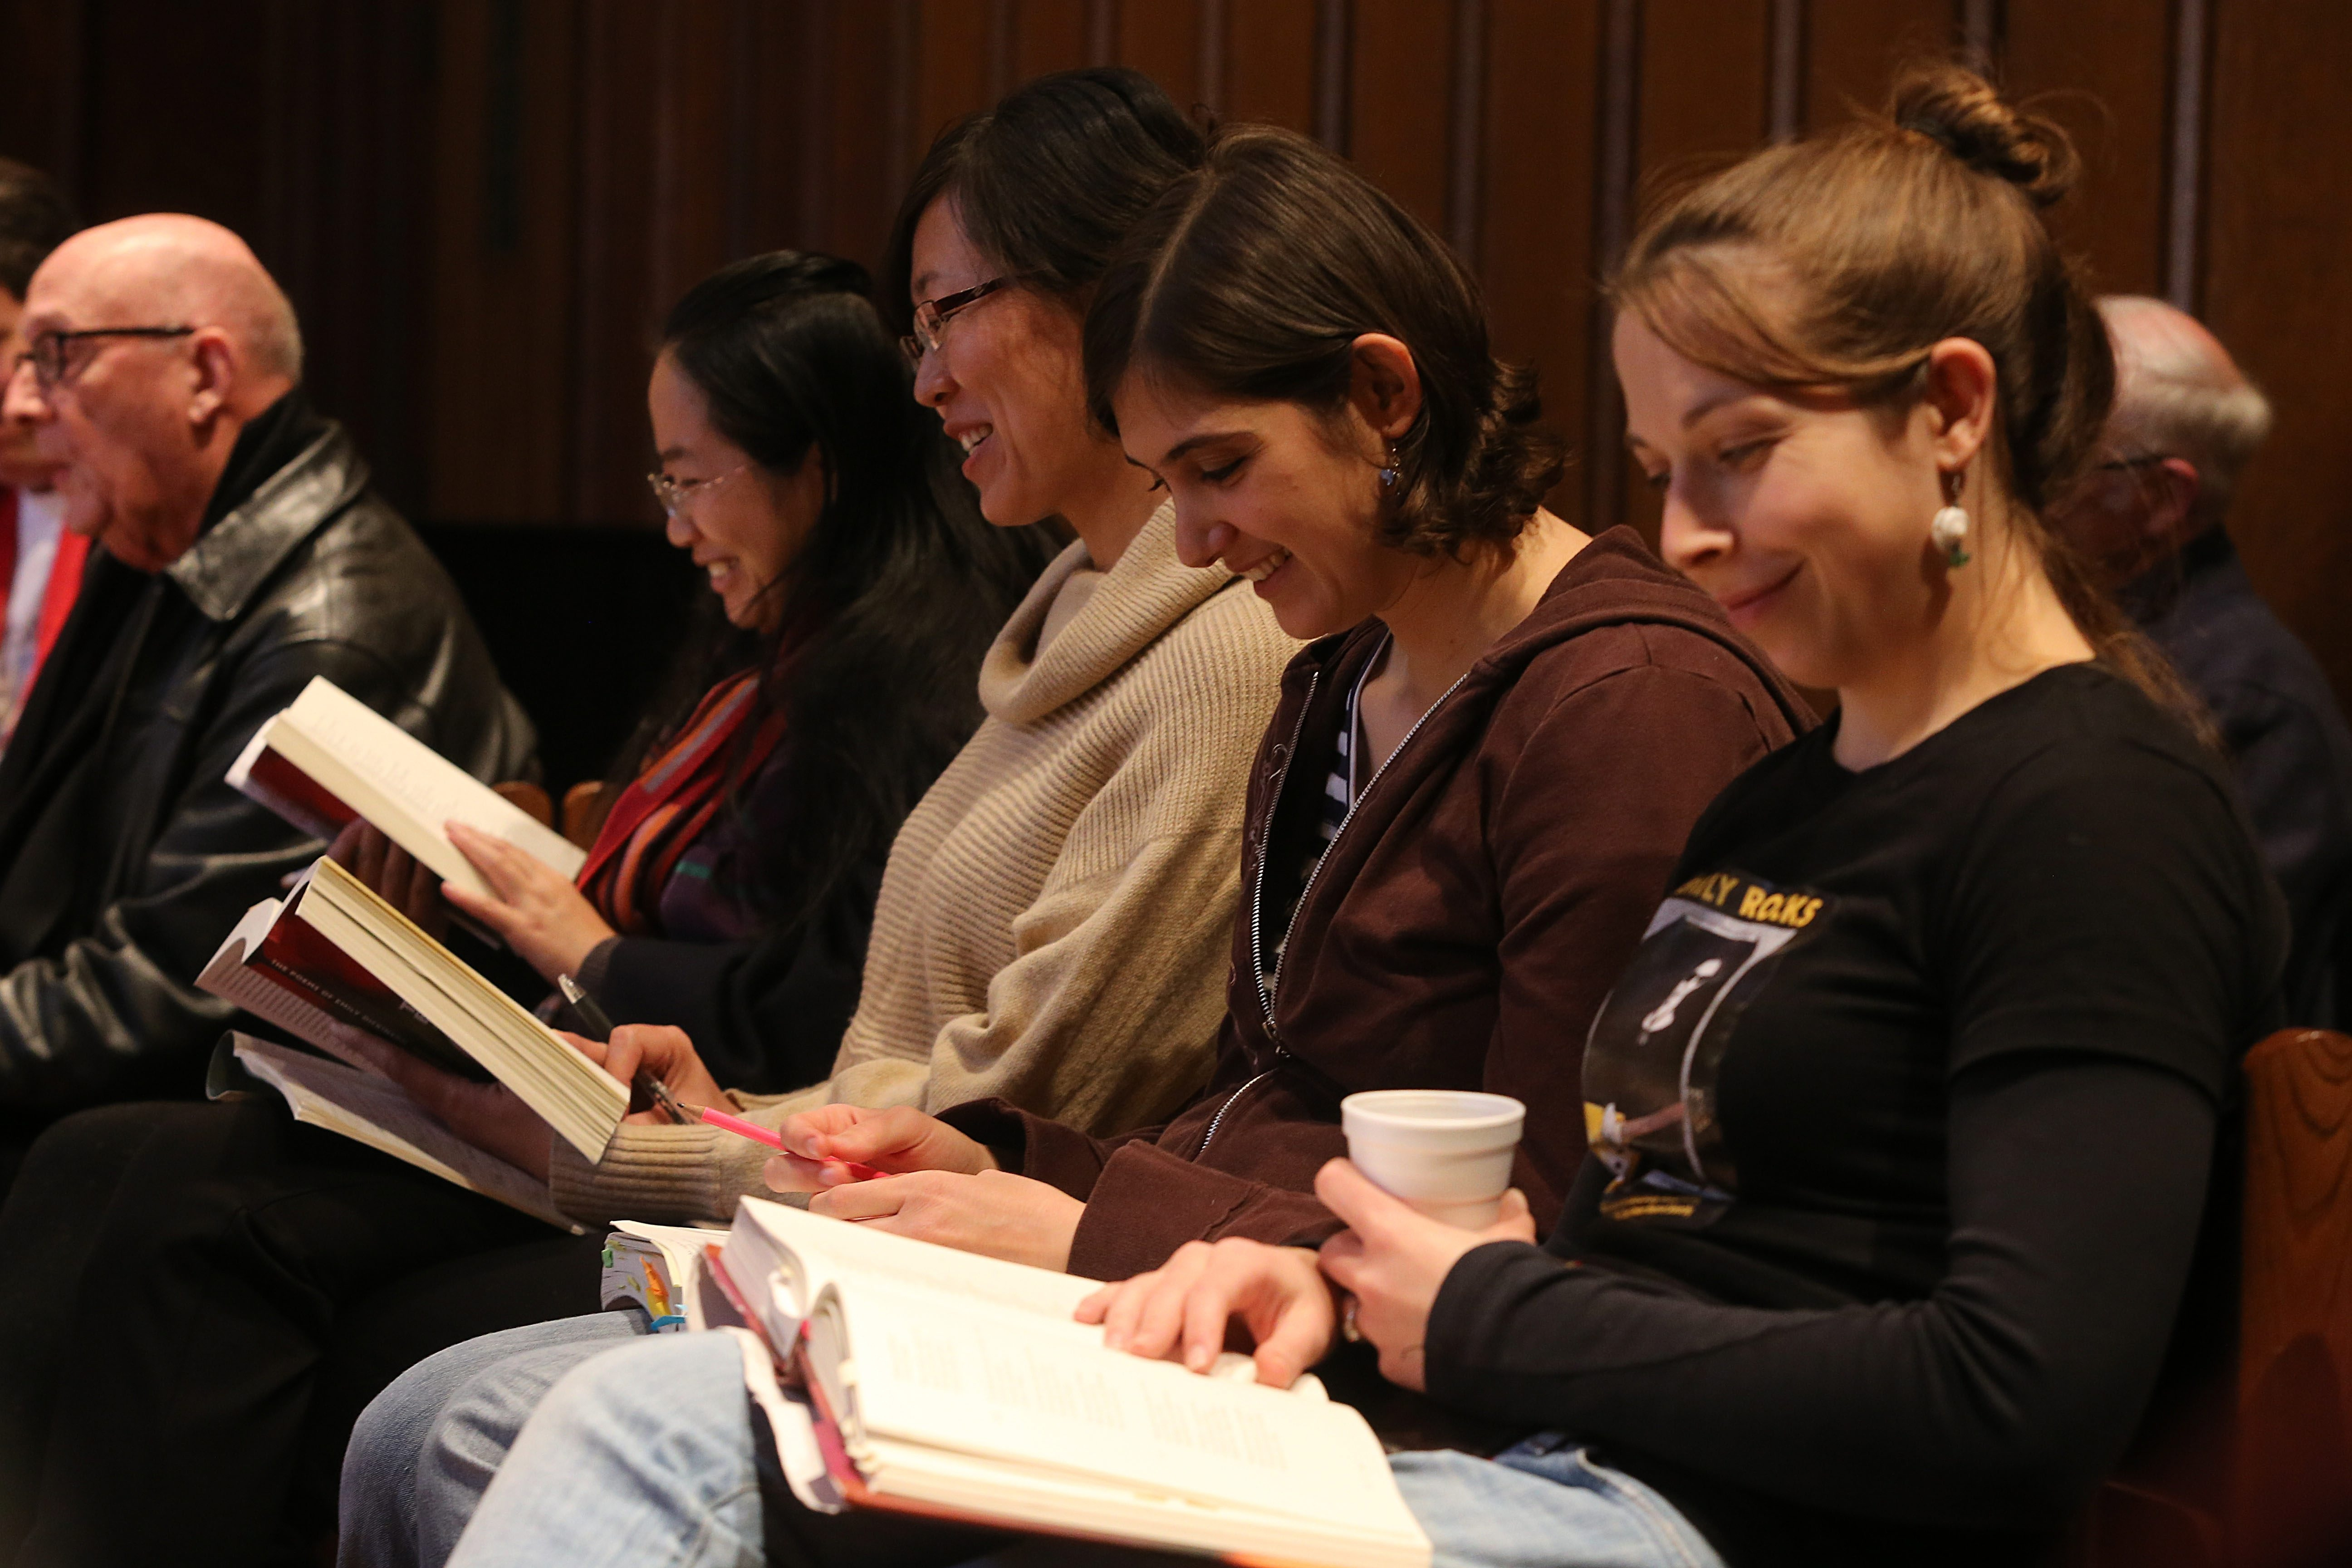 Participants take turns reading passages during an Emily Dickinson reading marathon at Westminster Presbyterian Church in Buffalo, Saturday, April, 13, 2013. Pictured, l to r, are: Yan bin Kang, Jine Wang, Ursula Caci and Kate Dunning. (Charles Lewis/Buffalo News)